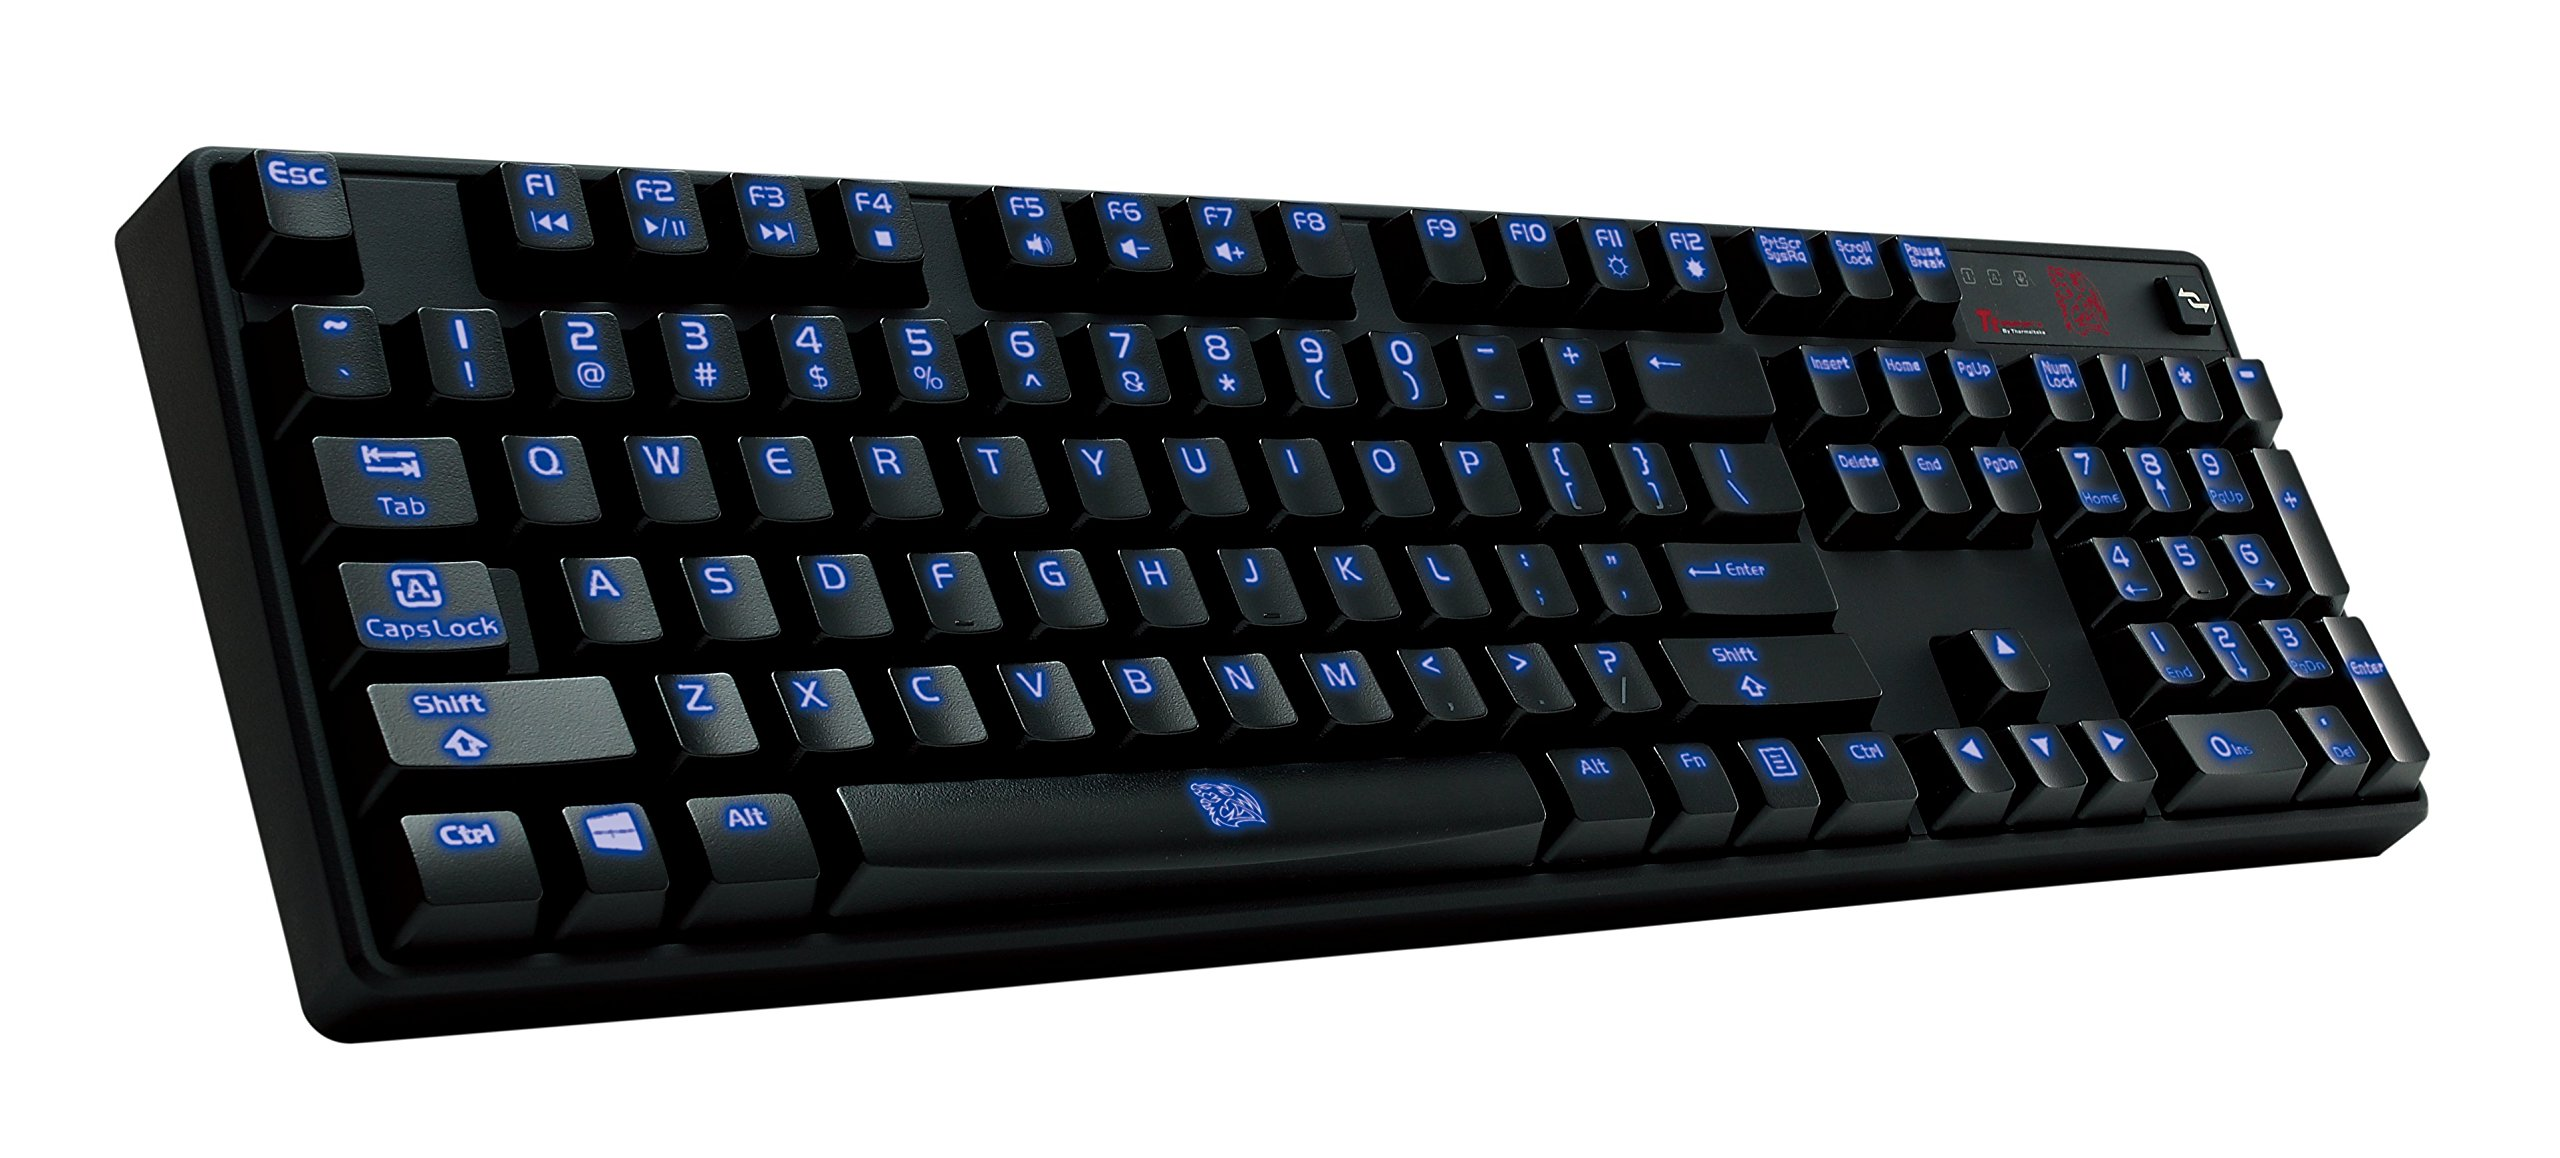 Thermaltake Tt e SPORTS Poseidon Z Blue Switches with 4-Level Brightness Blue LED Mechanical Gaming Keyboard KB-PIZ-KLBLUS-01